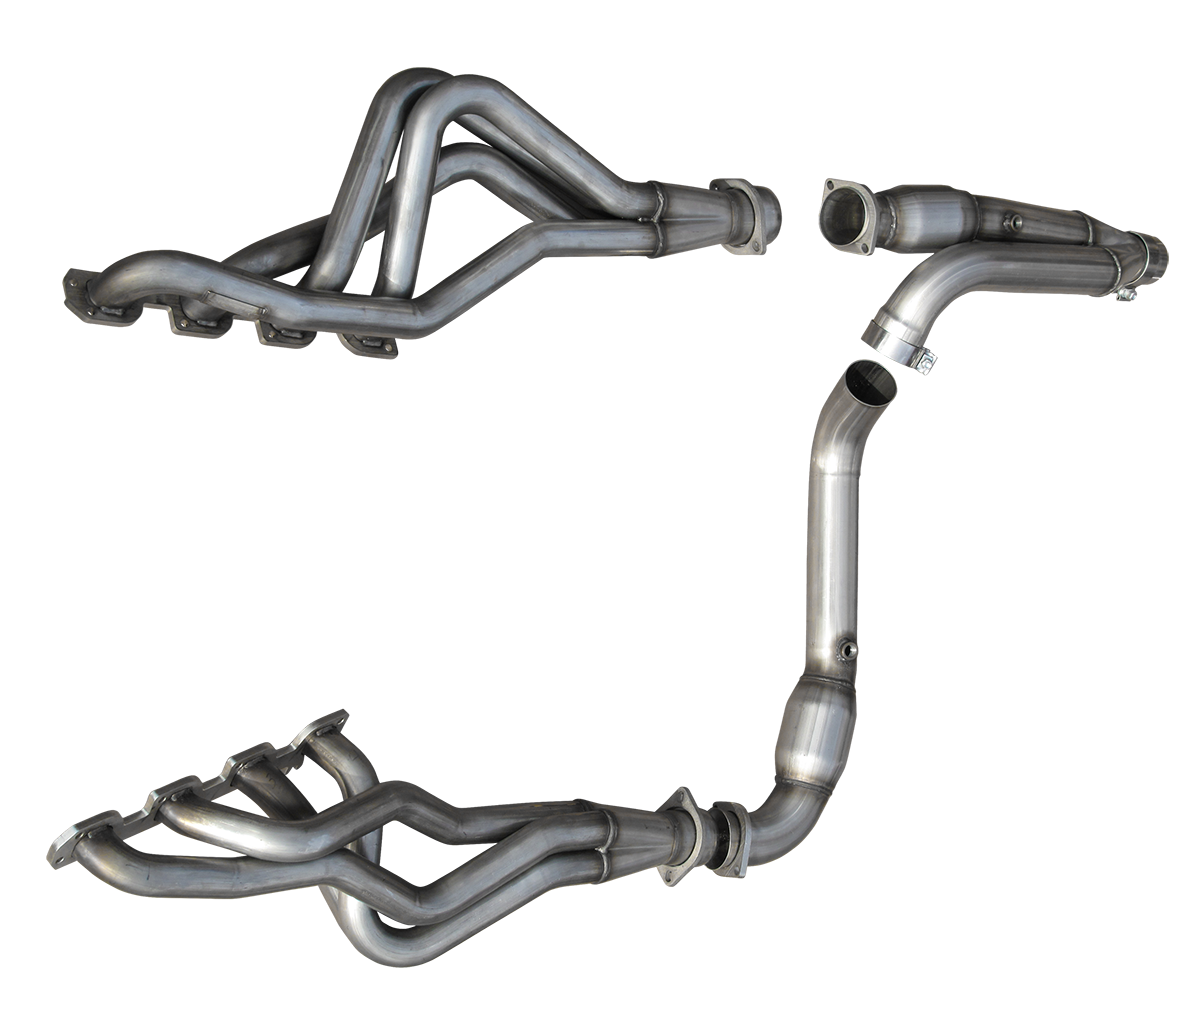 "2006-2008 Dodge Ram 1500 American Racing Headers 1 3/4"" x 3"" Long Tube Headers w/3"" Ypipe w/Cats"